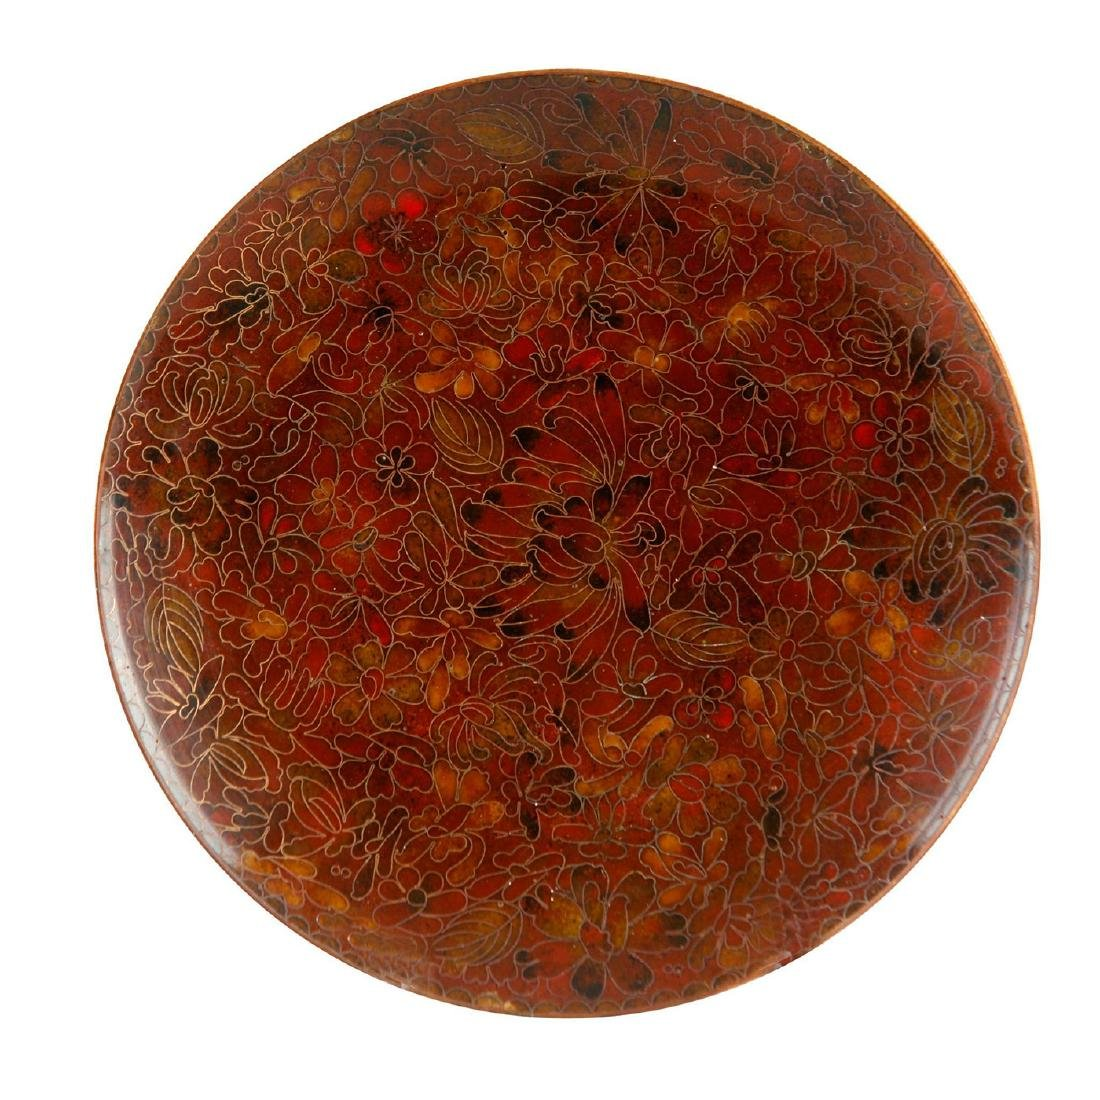 CHINESE CLOISONNE PLATE WITH FLORAL PATTERNS, RUSSET